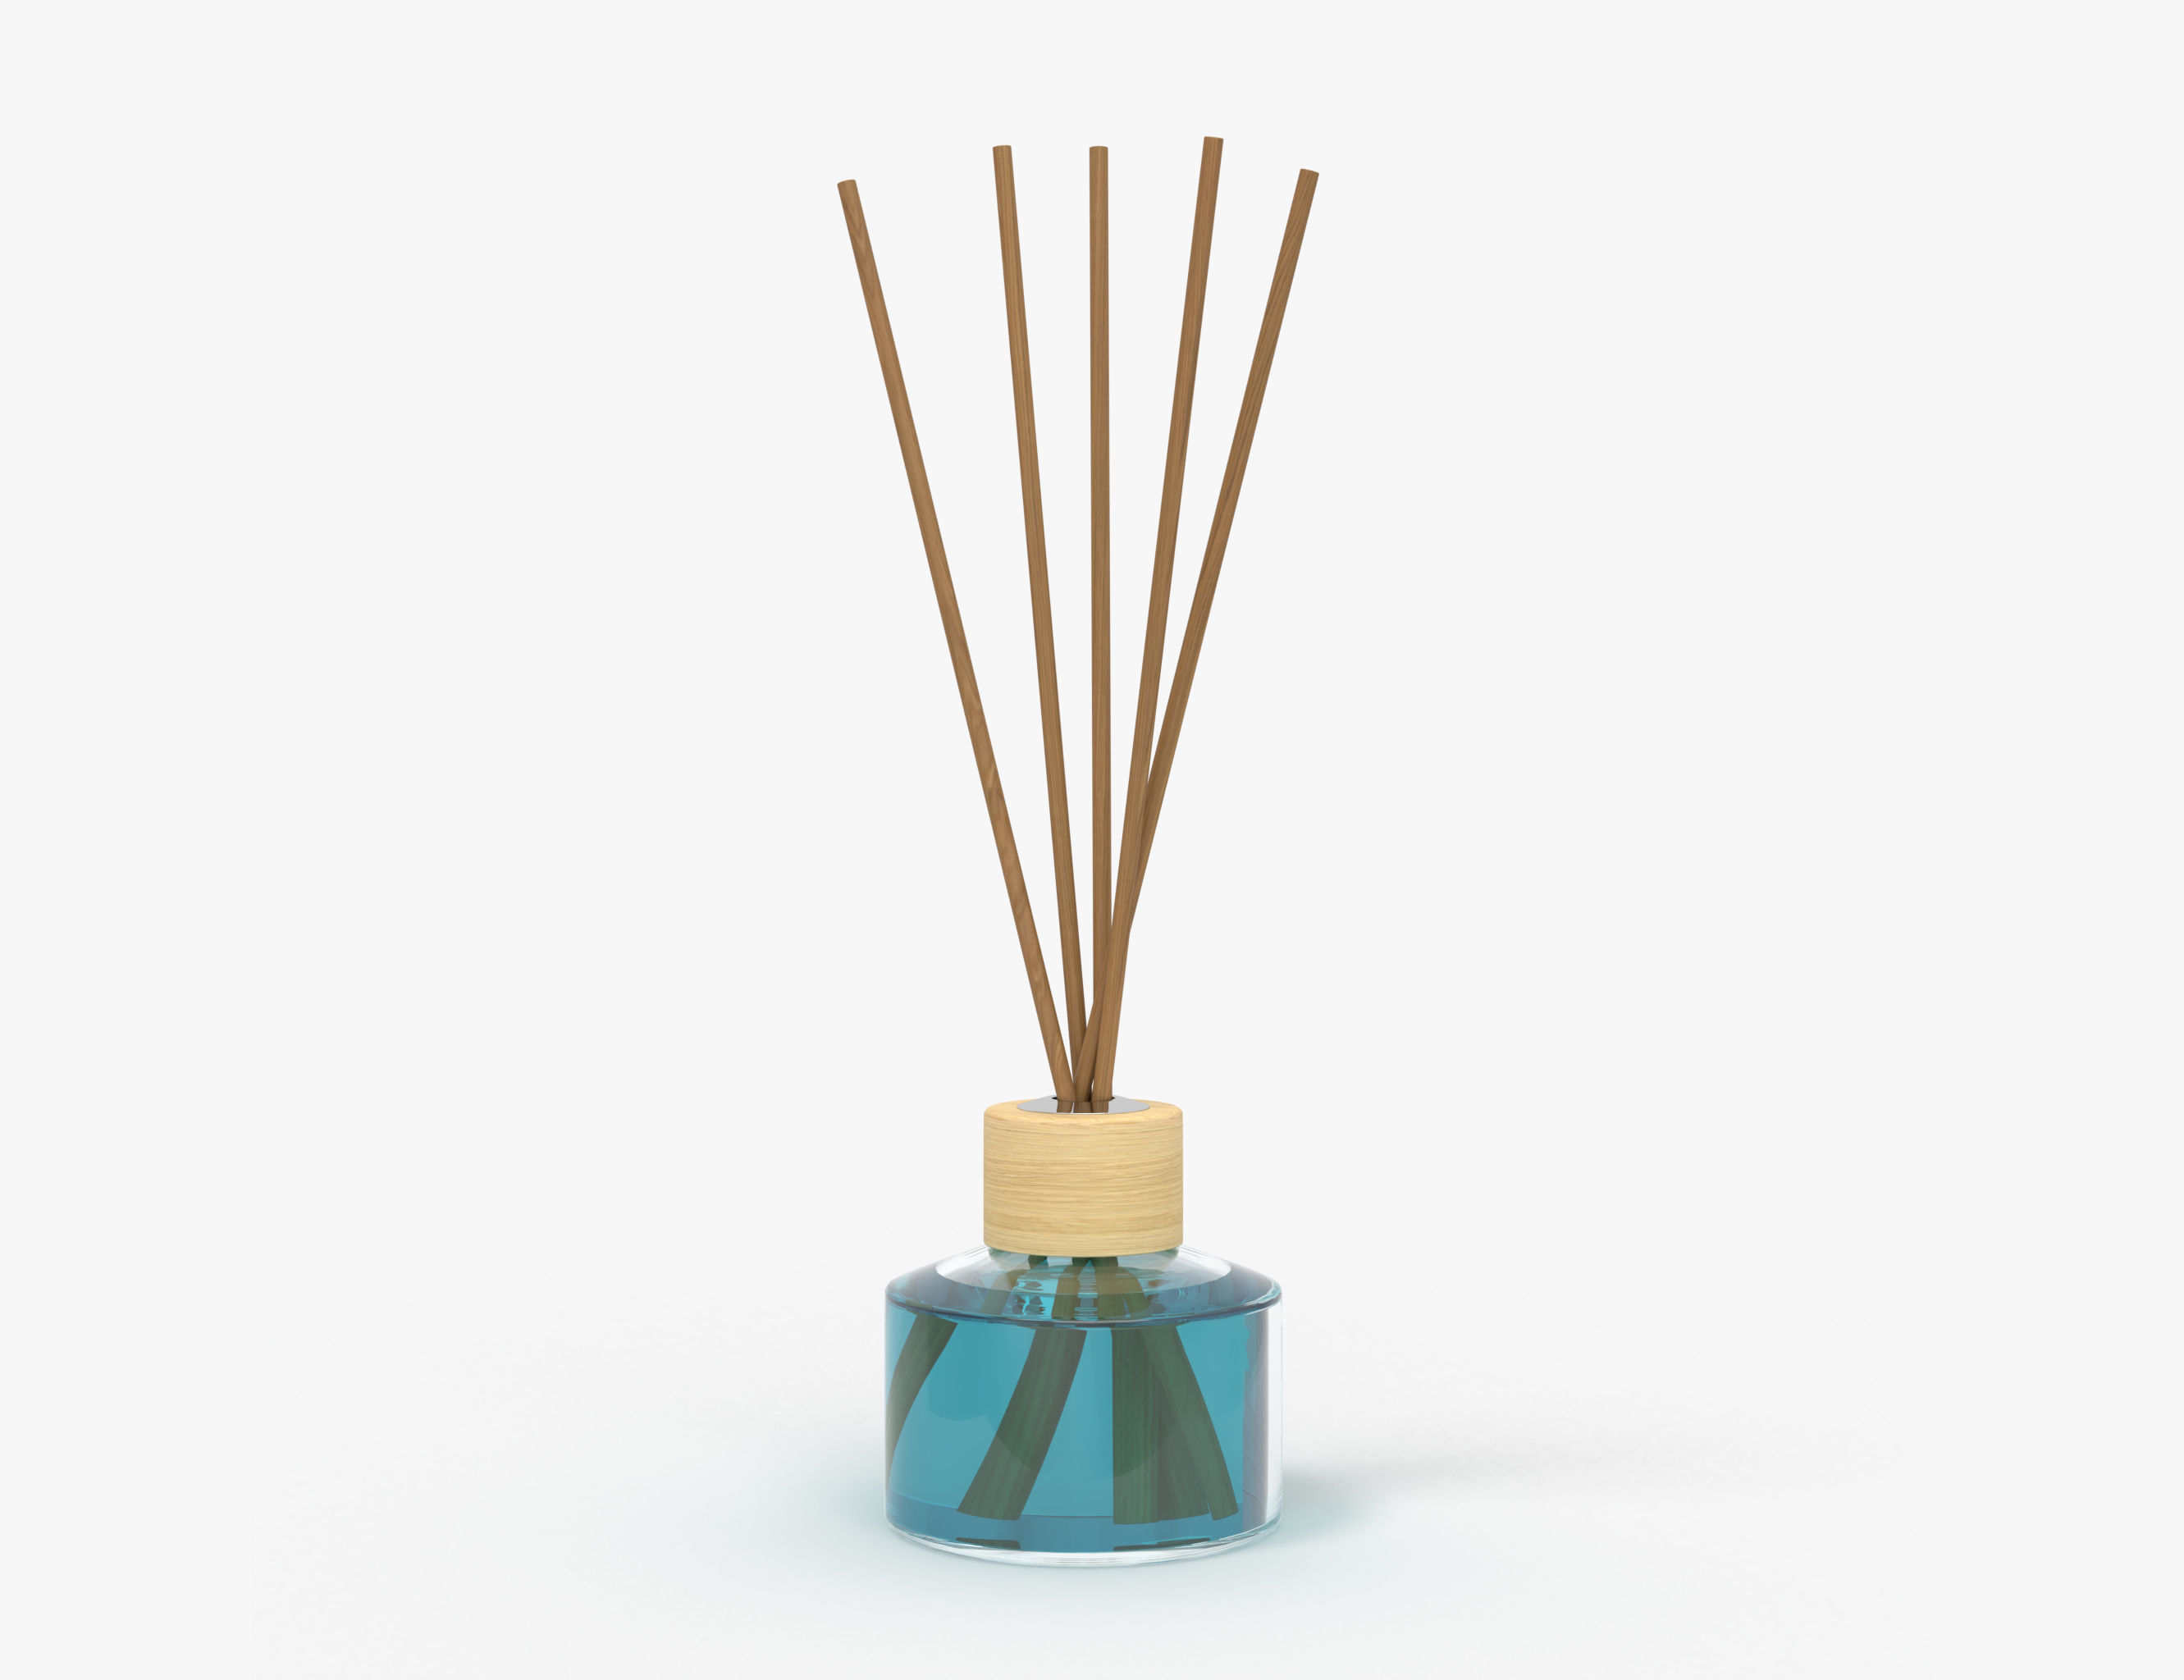 Air refresher bottle with sticks 04